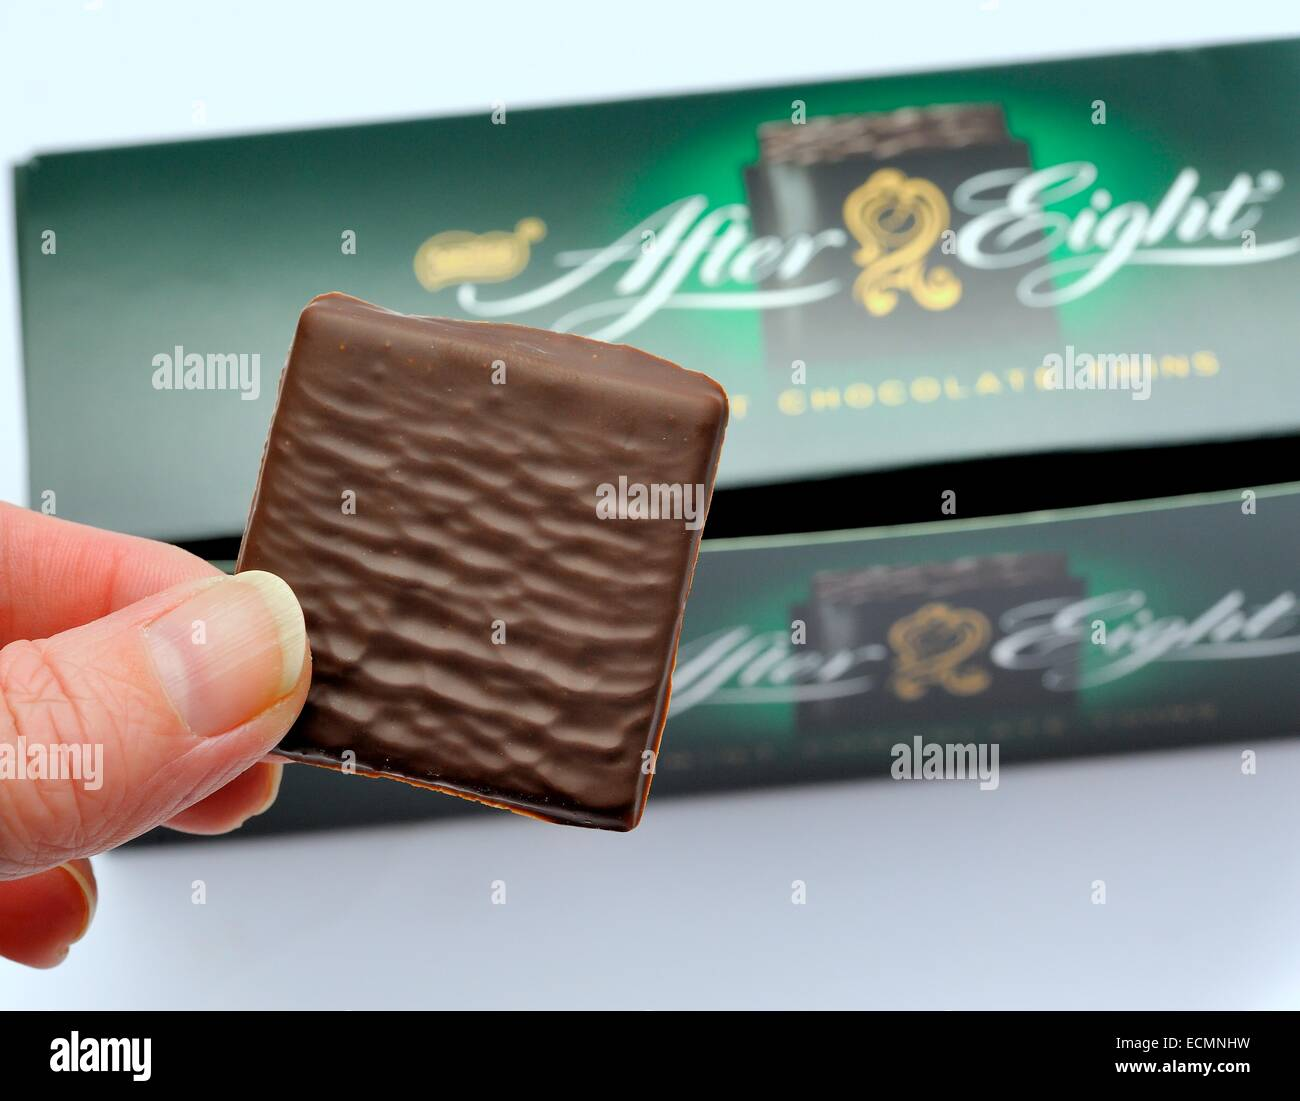 An After eight chocolate mint being held above the out of focus box - Stock Image